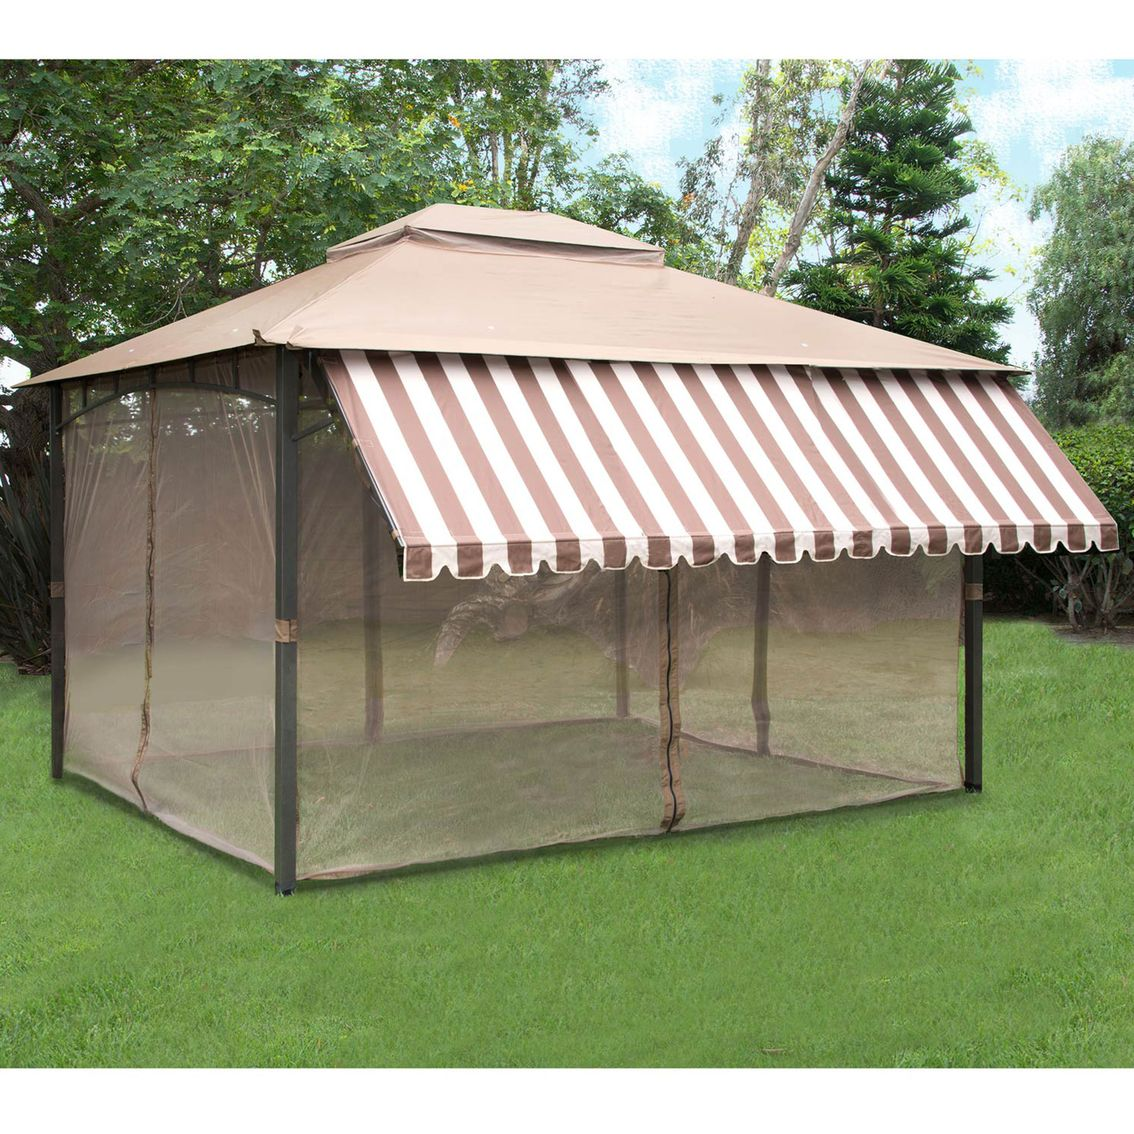 Pacific Casual Jefferson Point Ii Garden House With 12 Ft Half Awning Green Houses Garden Beds More Shop The Home And Garden Pergola Patio Roof Styles